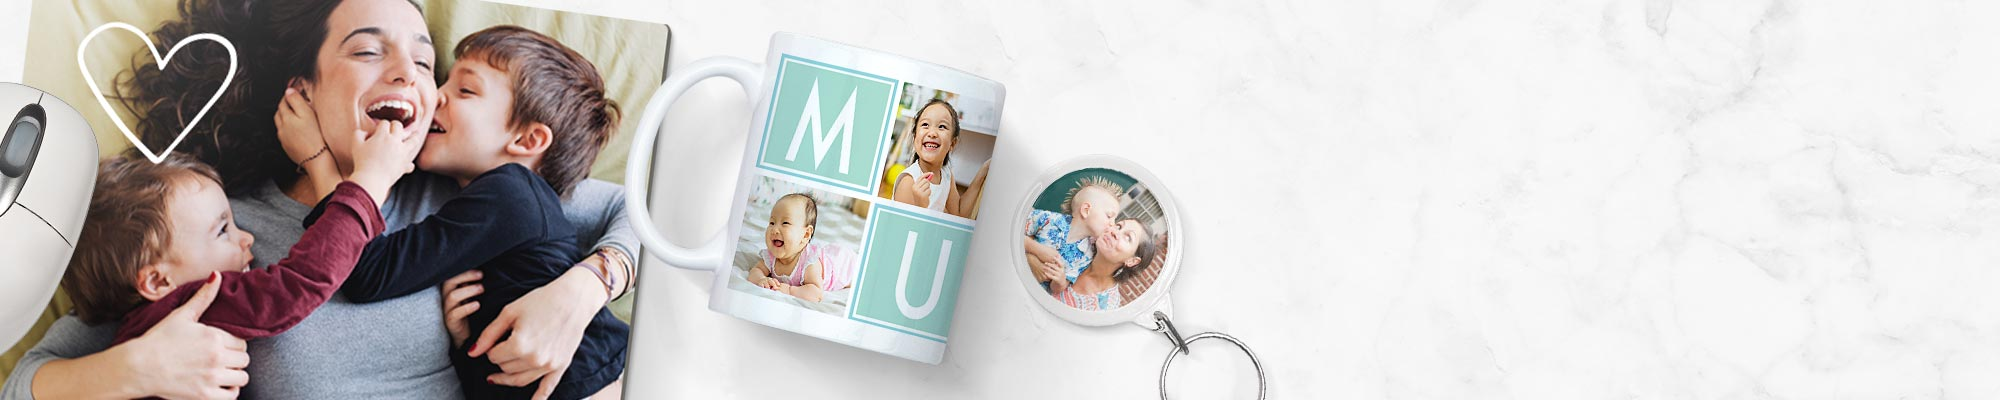 Photo Gifts Personalised mugs, mousemats, keyrings and more. It only takes minutes to make a cherished keepsake.